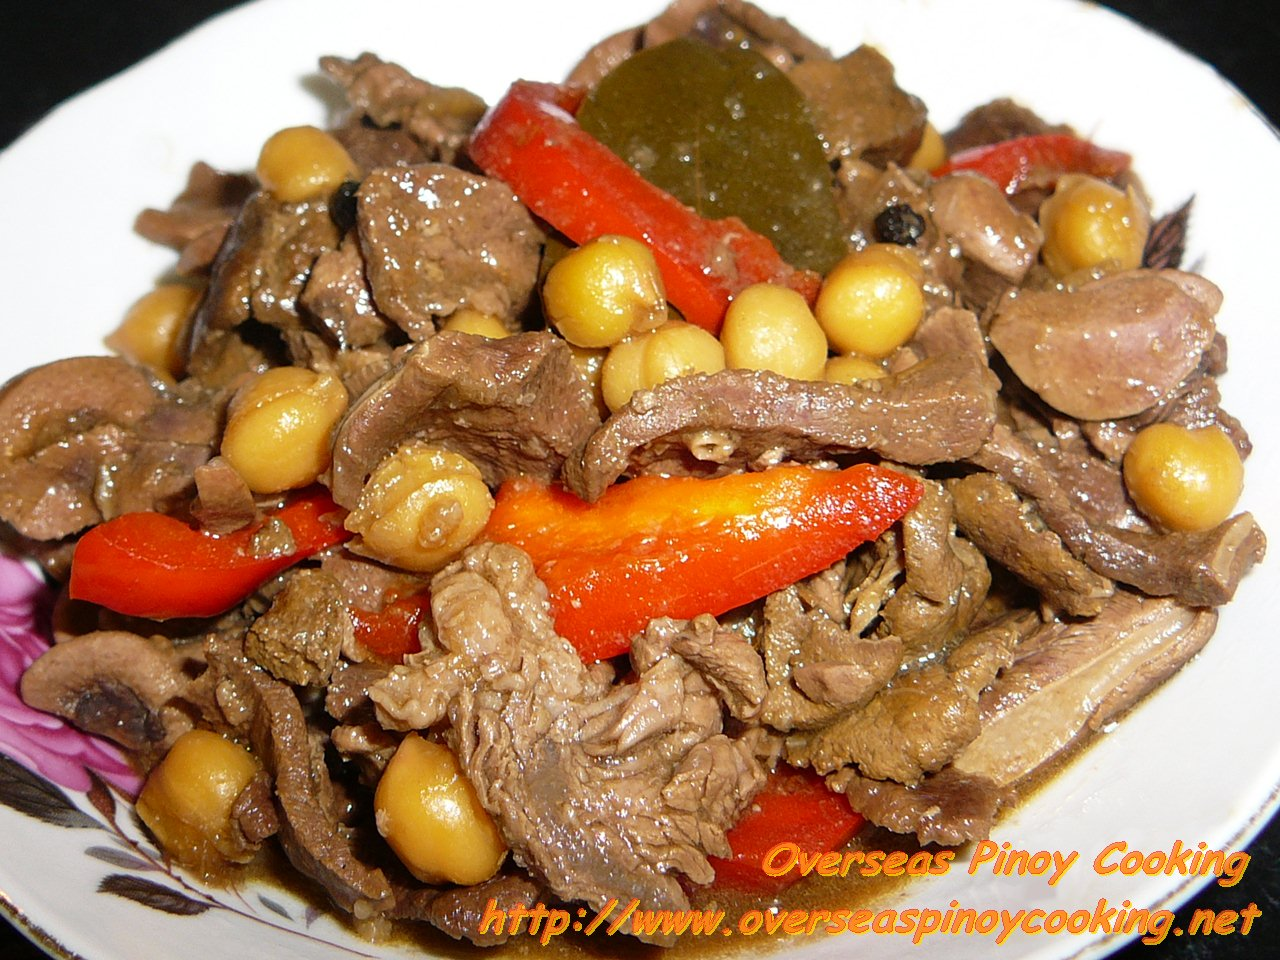 filipino i 41 reviews of filipino cuisine unreal good i mean great stunning variety of asian foods and spices i have never tried before cuts of meat and fish in many creative and authentic spices and combinations - that is what you get no need.